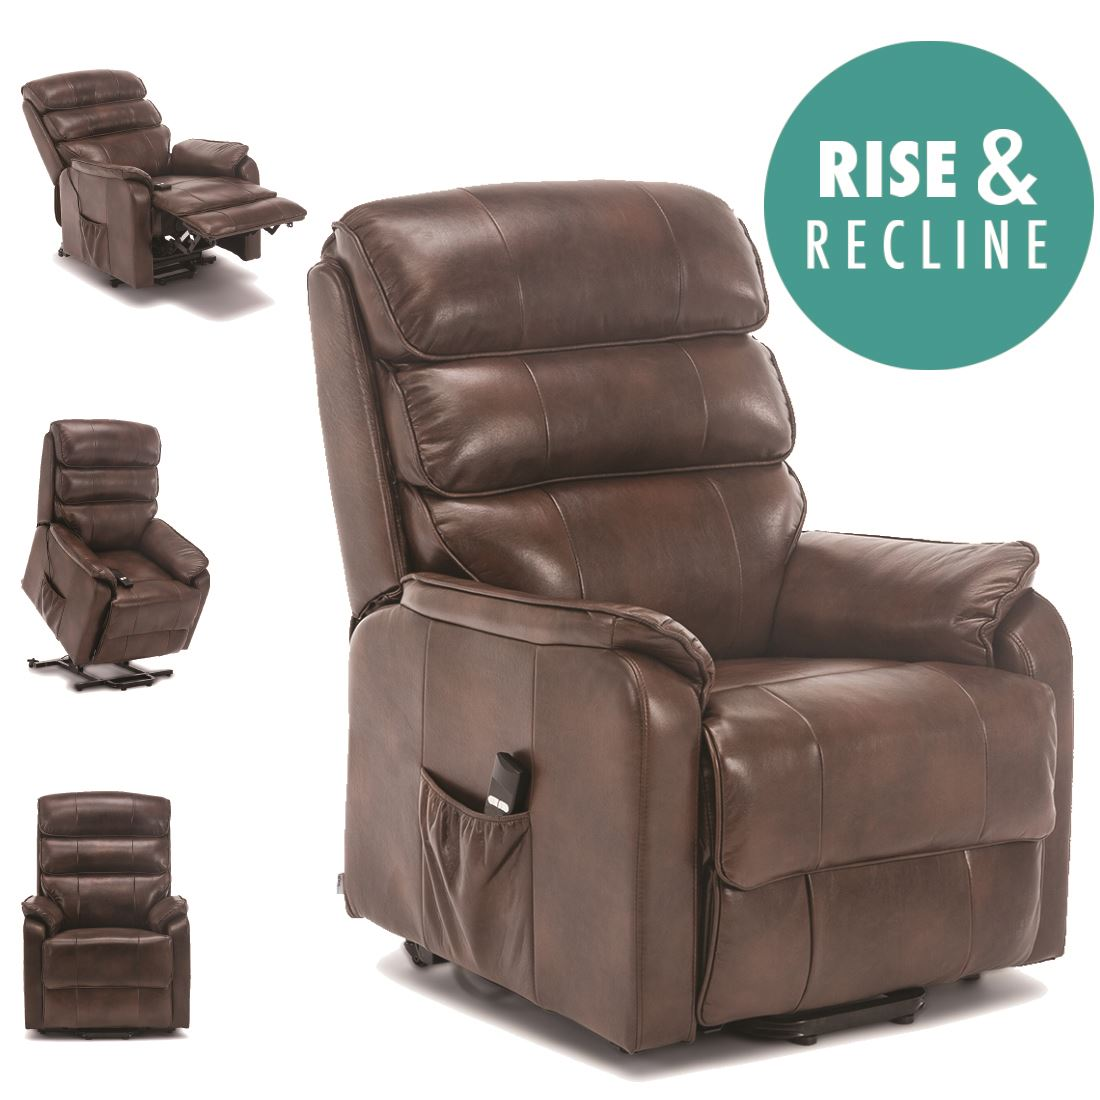 BUCKINGHAM-ELECTRIC-RISE-RECLINER-LEATHER-AIR-RISER-SOFA-  sc 1 st  eBay & BUCKINGHAM ELECTRIC RISE RECLINER LEATHER AIR RISER SOFA ARMCHAIR ... islam-shia.org